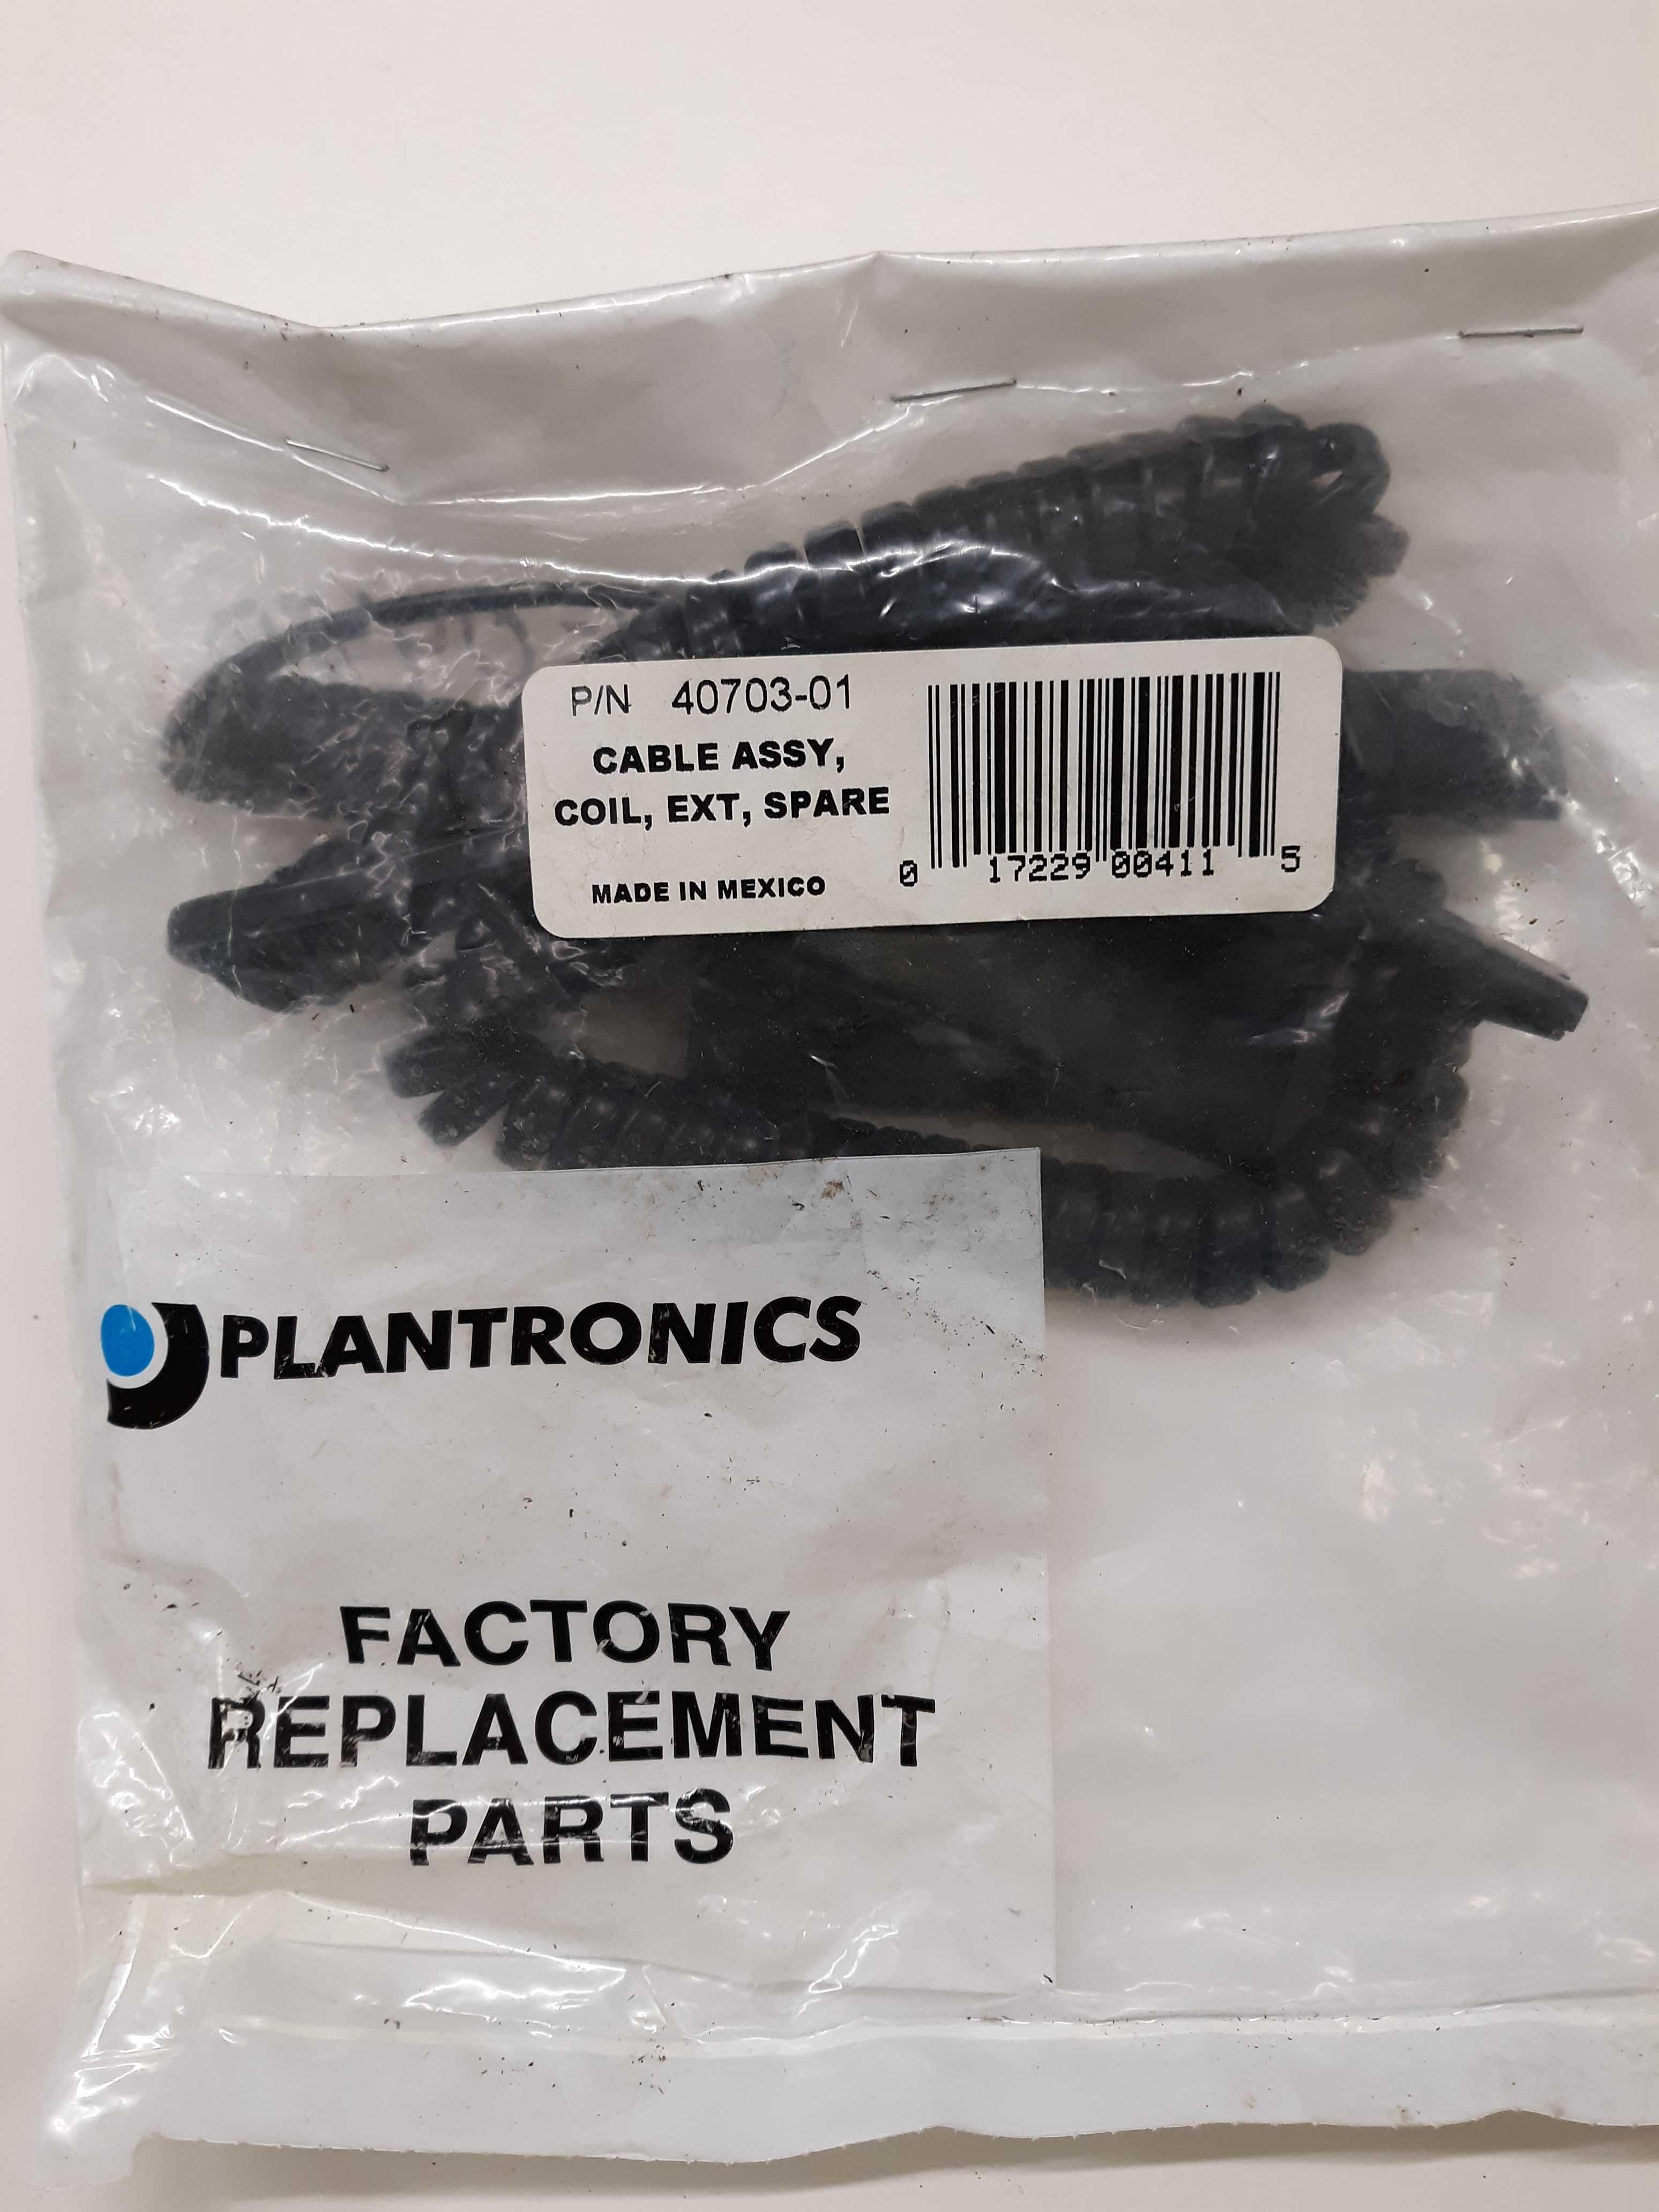 Plantronics 40703-01 Telephone Cable Assembly